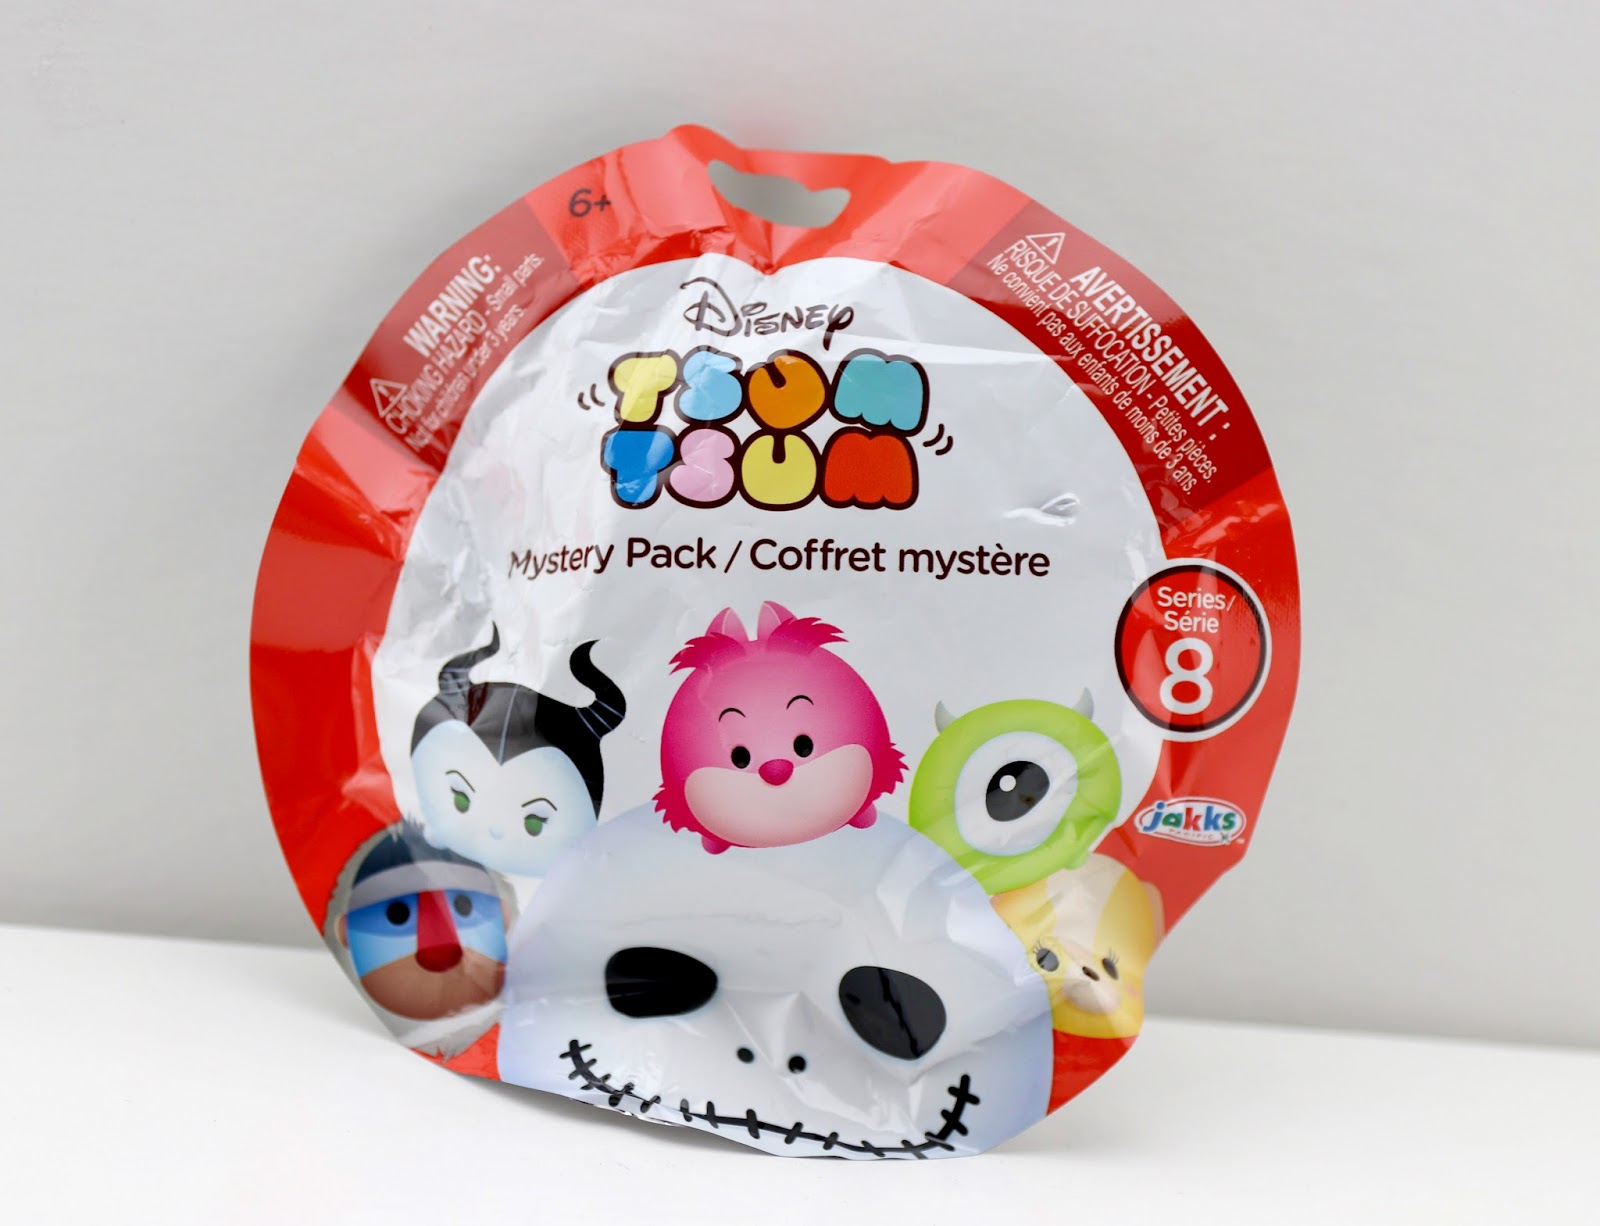 Disney Tsum Tsum Mystery Stack Packs series 8 Jakks Pacific